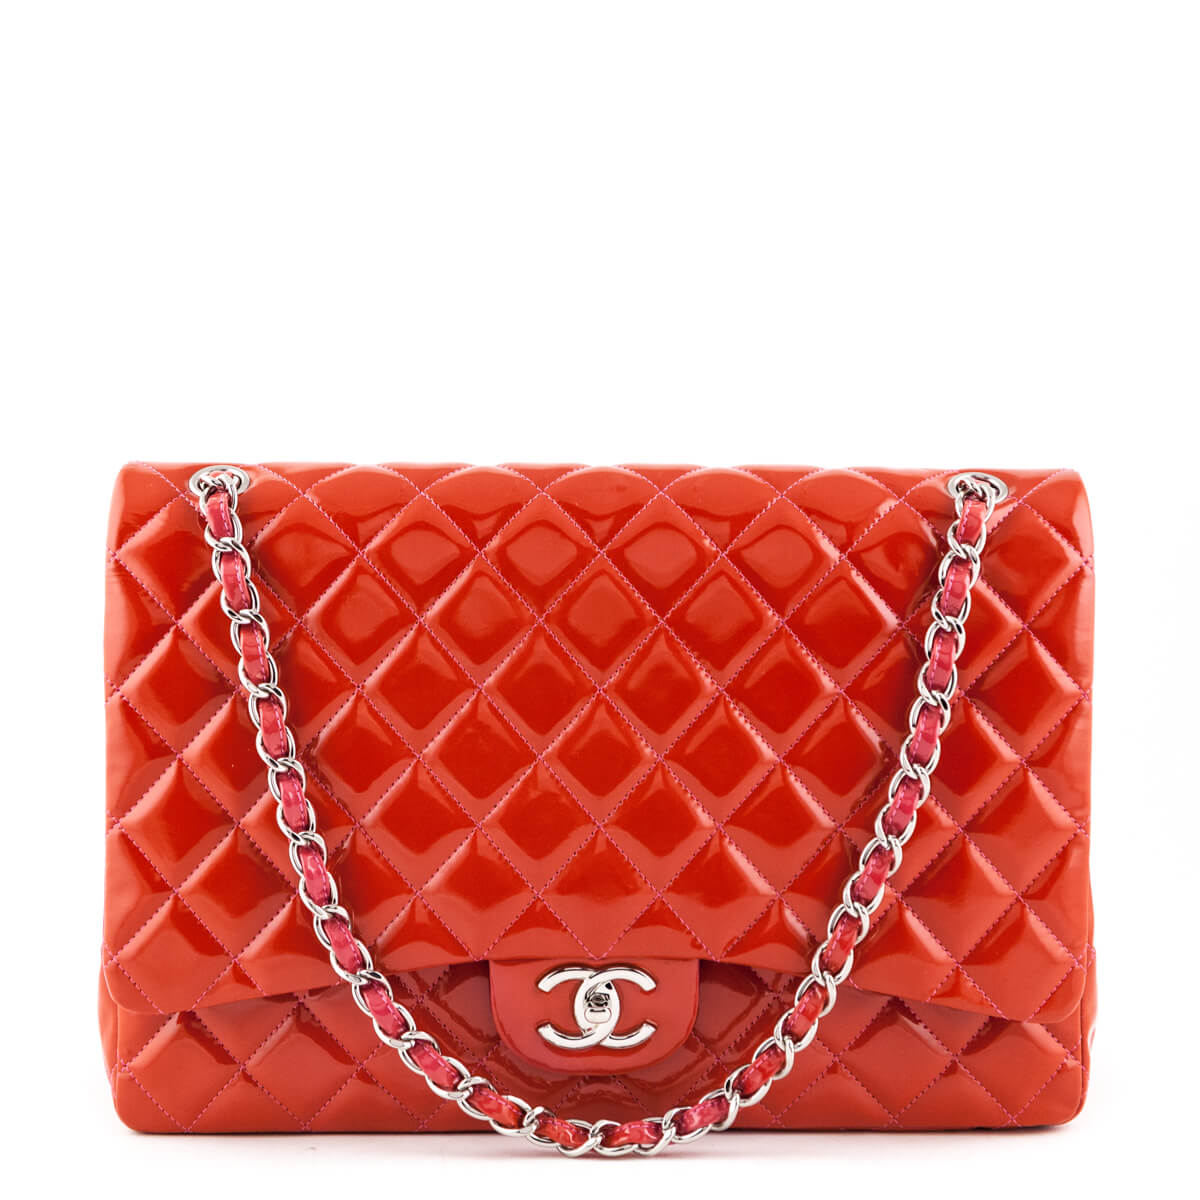 0b705764ee32 Chanel Red Patent Classic Maxi Flap Bag SHW - LOVE that BAG - Preowned  Authentic Designer ...